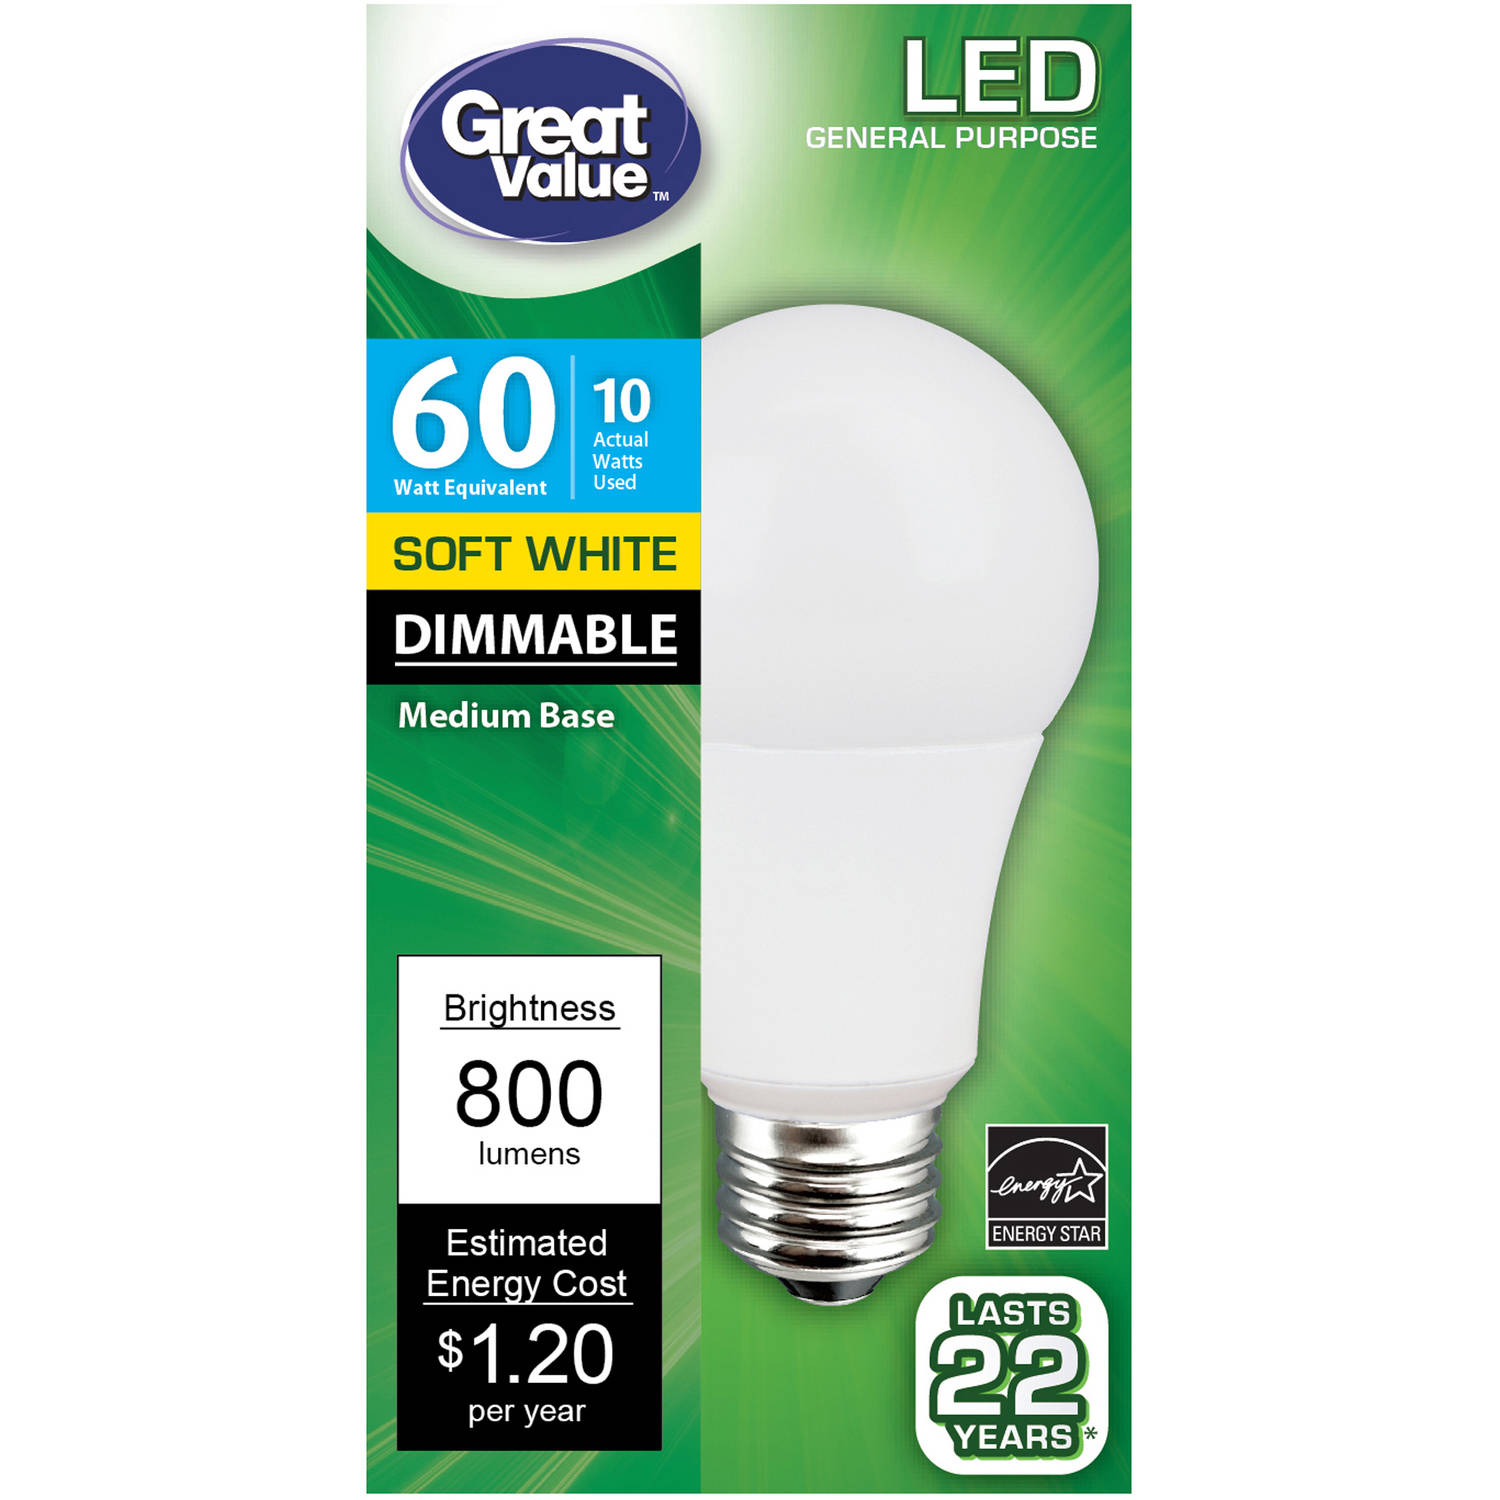 Great Value LED Light Bulb 10W (60W Equivalent) Omni (E26) Dimmable, Soft White